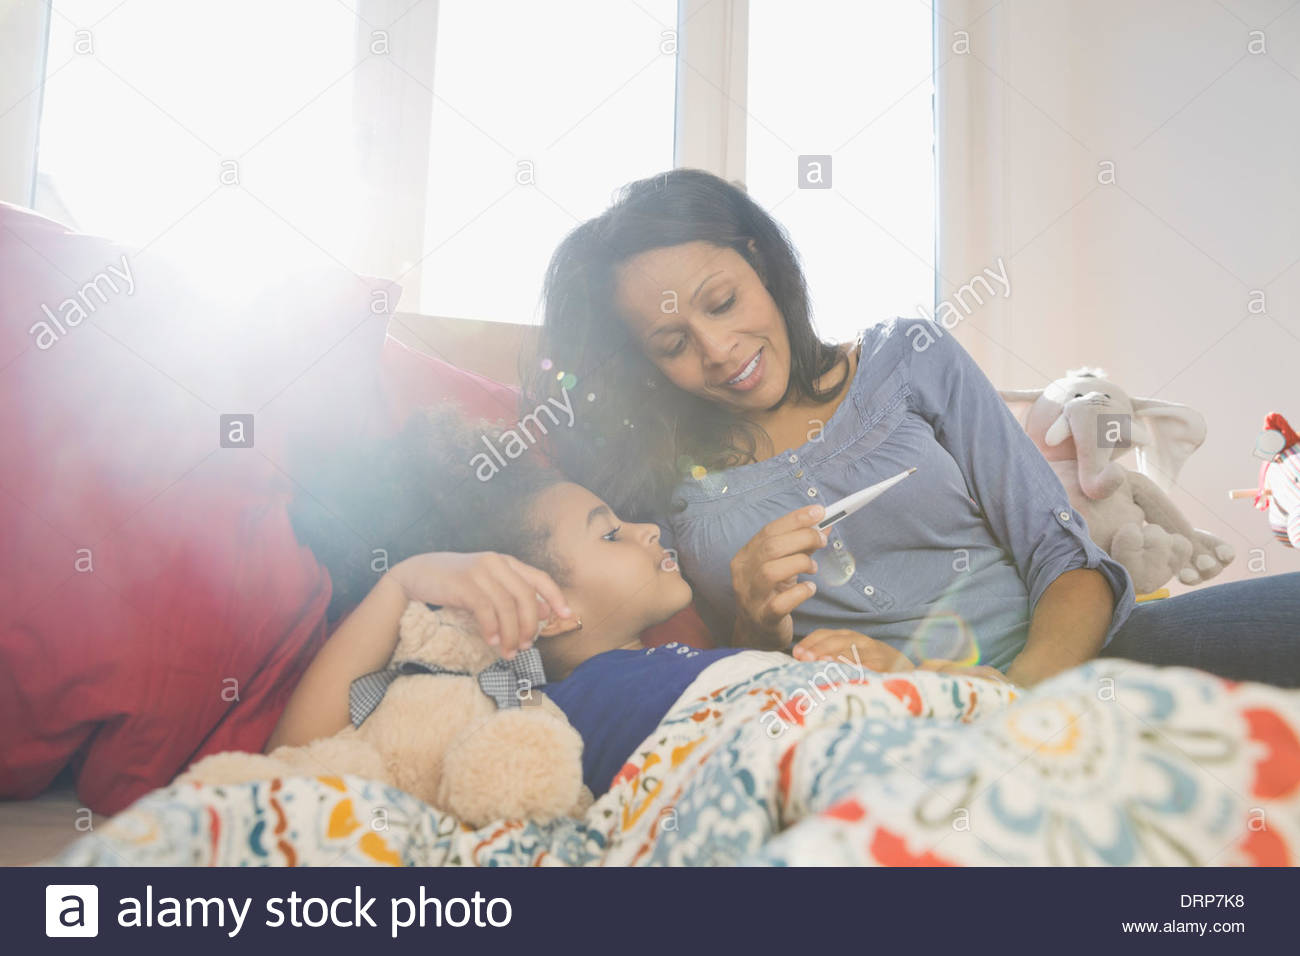 Mother checking daughters temperature with thermometer - Stock Image